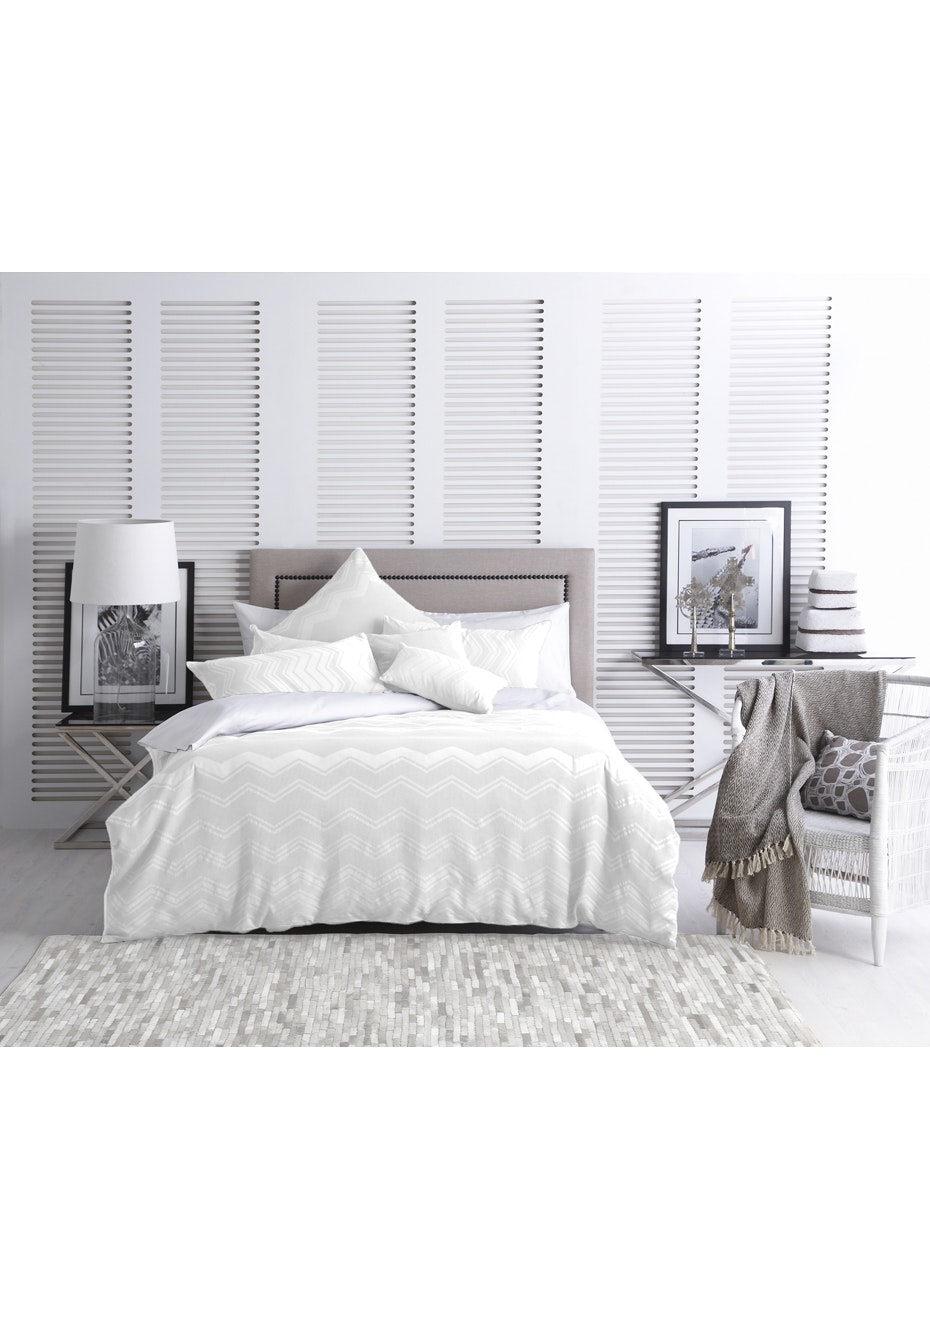 Conrad Quilt Cover Set   Queen Bed   White   Winter Thermal Sheets Pre Sale    Onceit